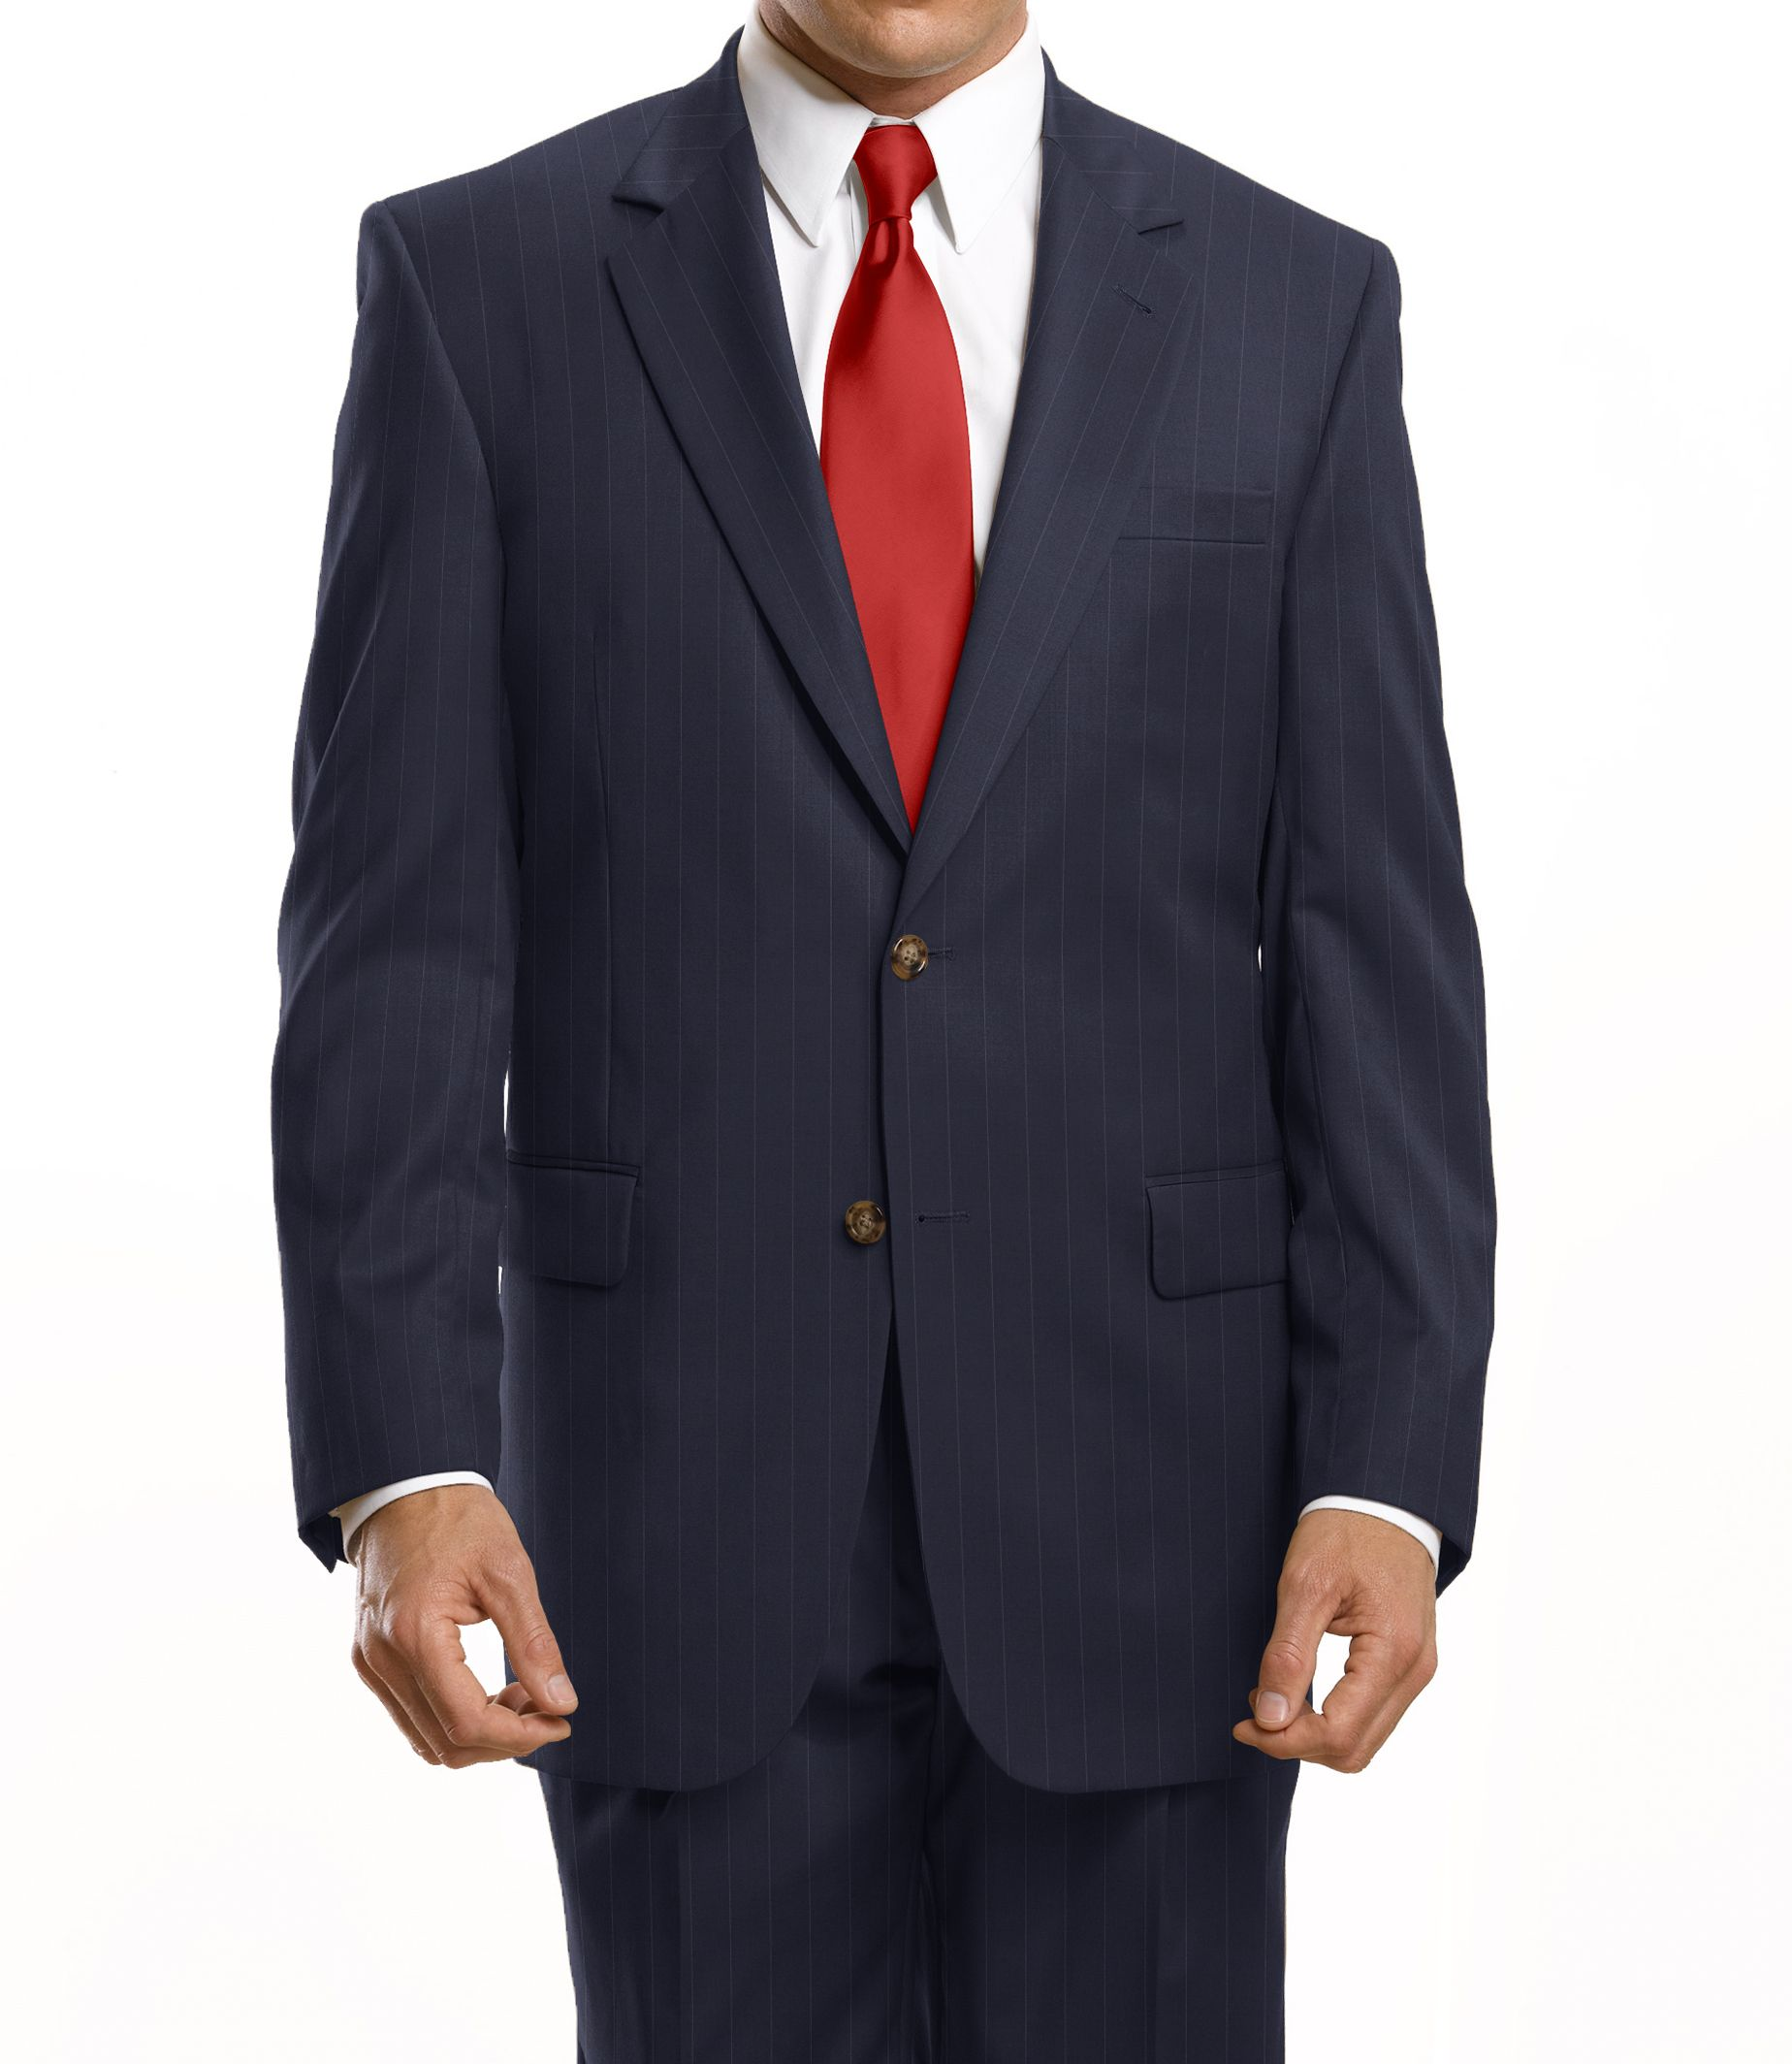 Discount clothing stores Business Express 2-Button Jacket- Navy Stripe- Buy 1, Get 1 FREE, Plus Get 2 Dress Shirts* & 2 Ties* FREE!